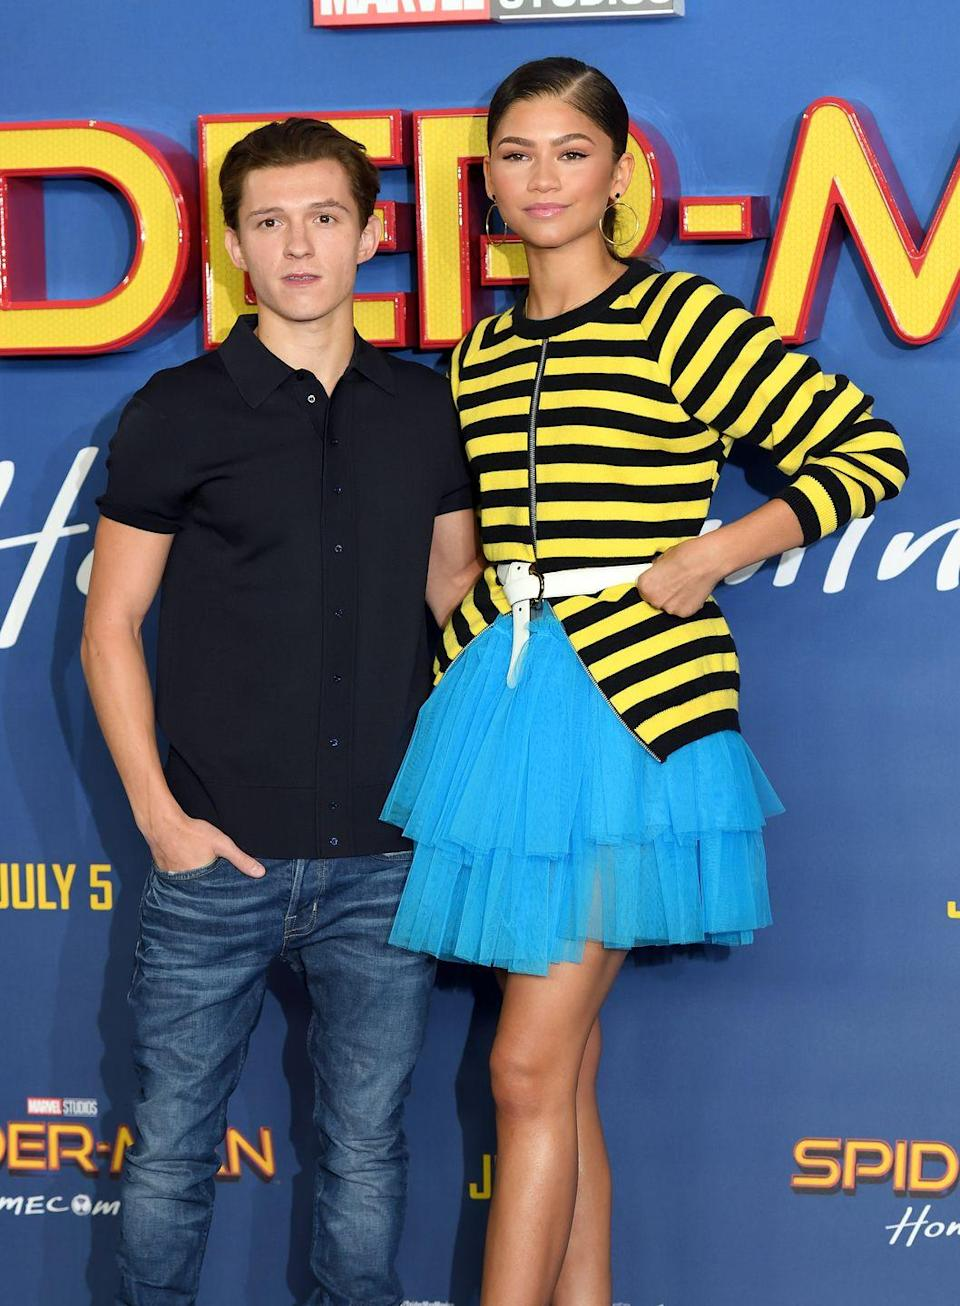 "<p>Despite spending so much time in the public eye, Zendaya managed to keep her relationship with fellow actor Tom Holland super private. The couple was apparently dating for about a year before their secret connection was <a href=""https://www.elle.com/culture/celebrities/a14424379/zendaya-and-tom-holland-still-dating-secretly-report/"" rel=""nofollow noopener"" target=""_blank"" data-ylk=""slk:reconfirmed"" class=""link rapid-noclick-resp"">reconfirmed</a> in December. They <a href=""http://people.com/movies/oscars-2018-zendaya-tom-holland-sit-together-laugh/"" rel=""nofollow noopener"" target=""_blank"" data-ylk=""slk:sat next to each other"" class=""link rapid-noclick-resp"">sat next to each other</a> at the 2018 Oscars, but by June 2019, Holland told ELLE that <a href=""https://www.elle.com/culture/movies-tv/a28074000/tom-holland-spiderman-july-2019-interview/#"" rel=""nofollow noopener"" target=""_blank"" data-ylk=""slk:he was single"" class=""link rapid-noclick-resp"">he was single</a>. Zendaya is <a href=""https://www.elle.com/culture/celebrities/a30782770/zendaya-jacob-elordi-dating-details/"" rel=""nofollow noopener"" target=""_blank"" data-ylk=""slk:now linked"" class=""link rapid-noclick-resp"">now linked</a> to her <em>Euphoria </em>co-star Jacob Elrodi.</p>"